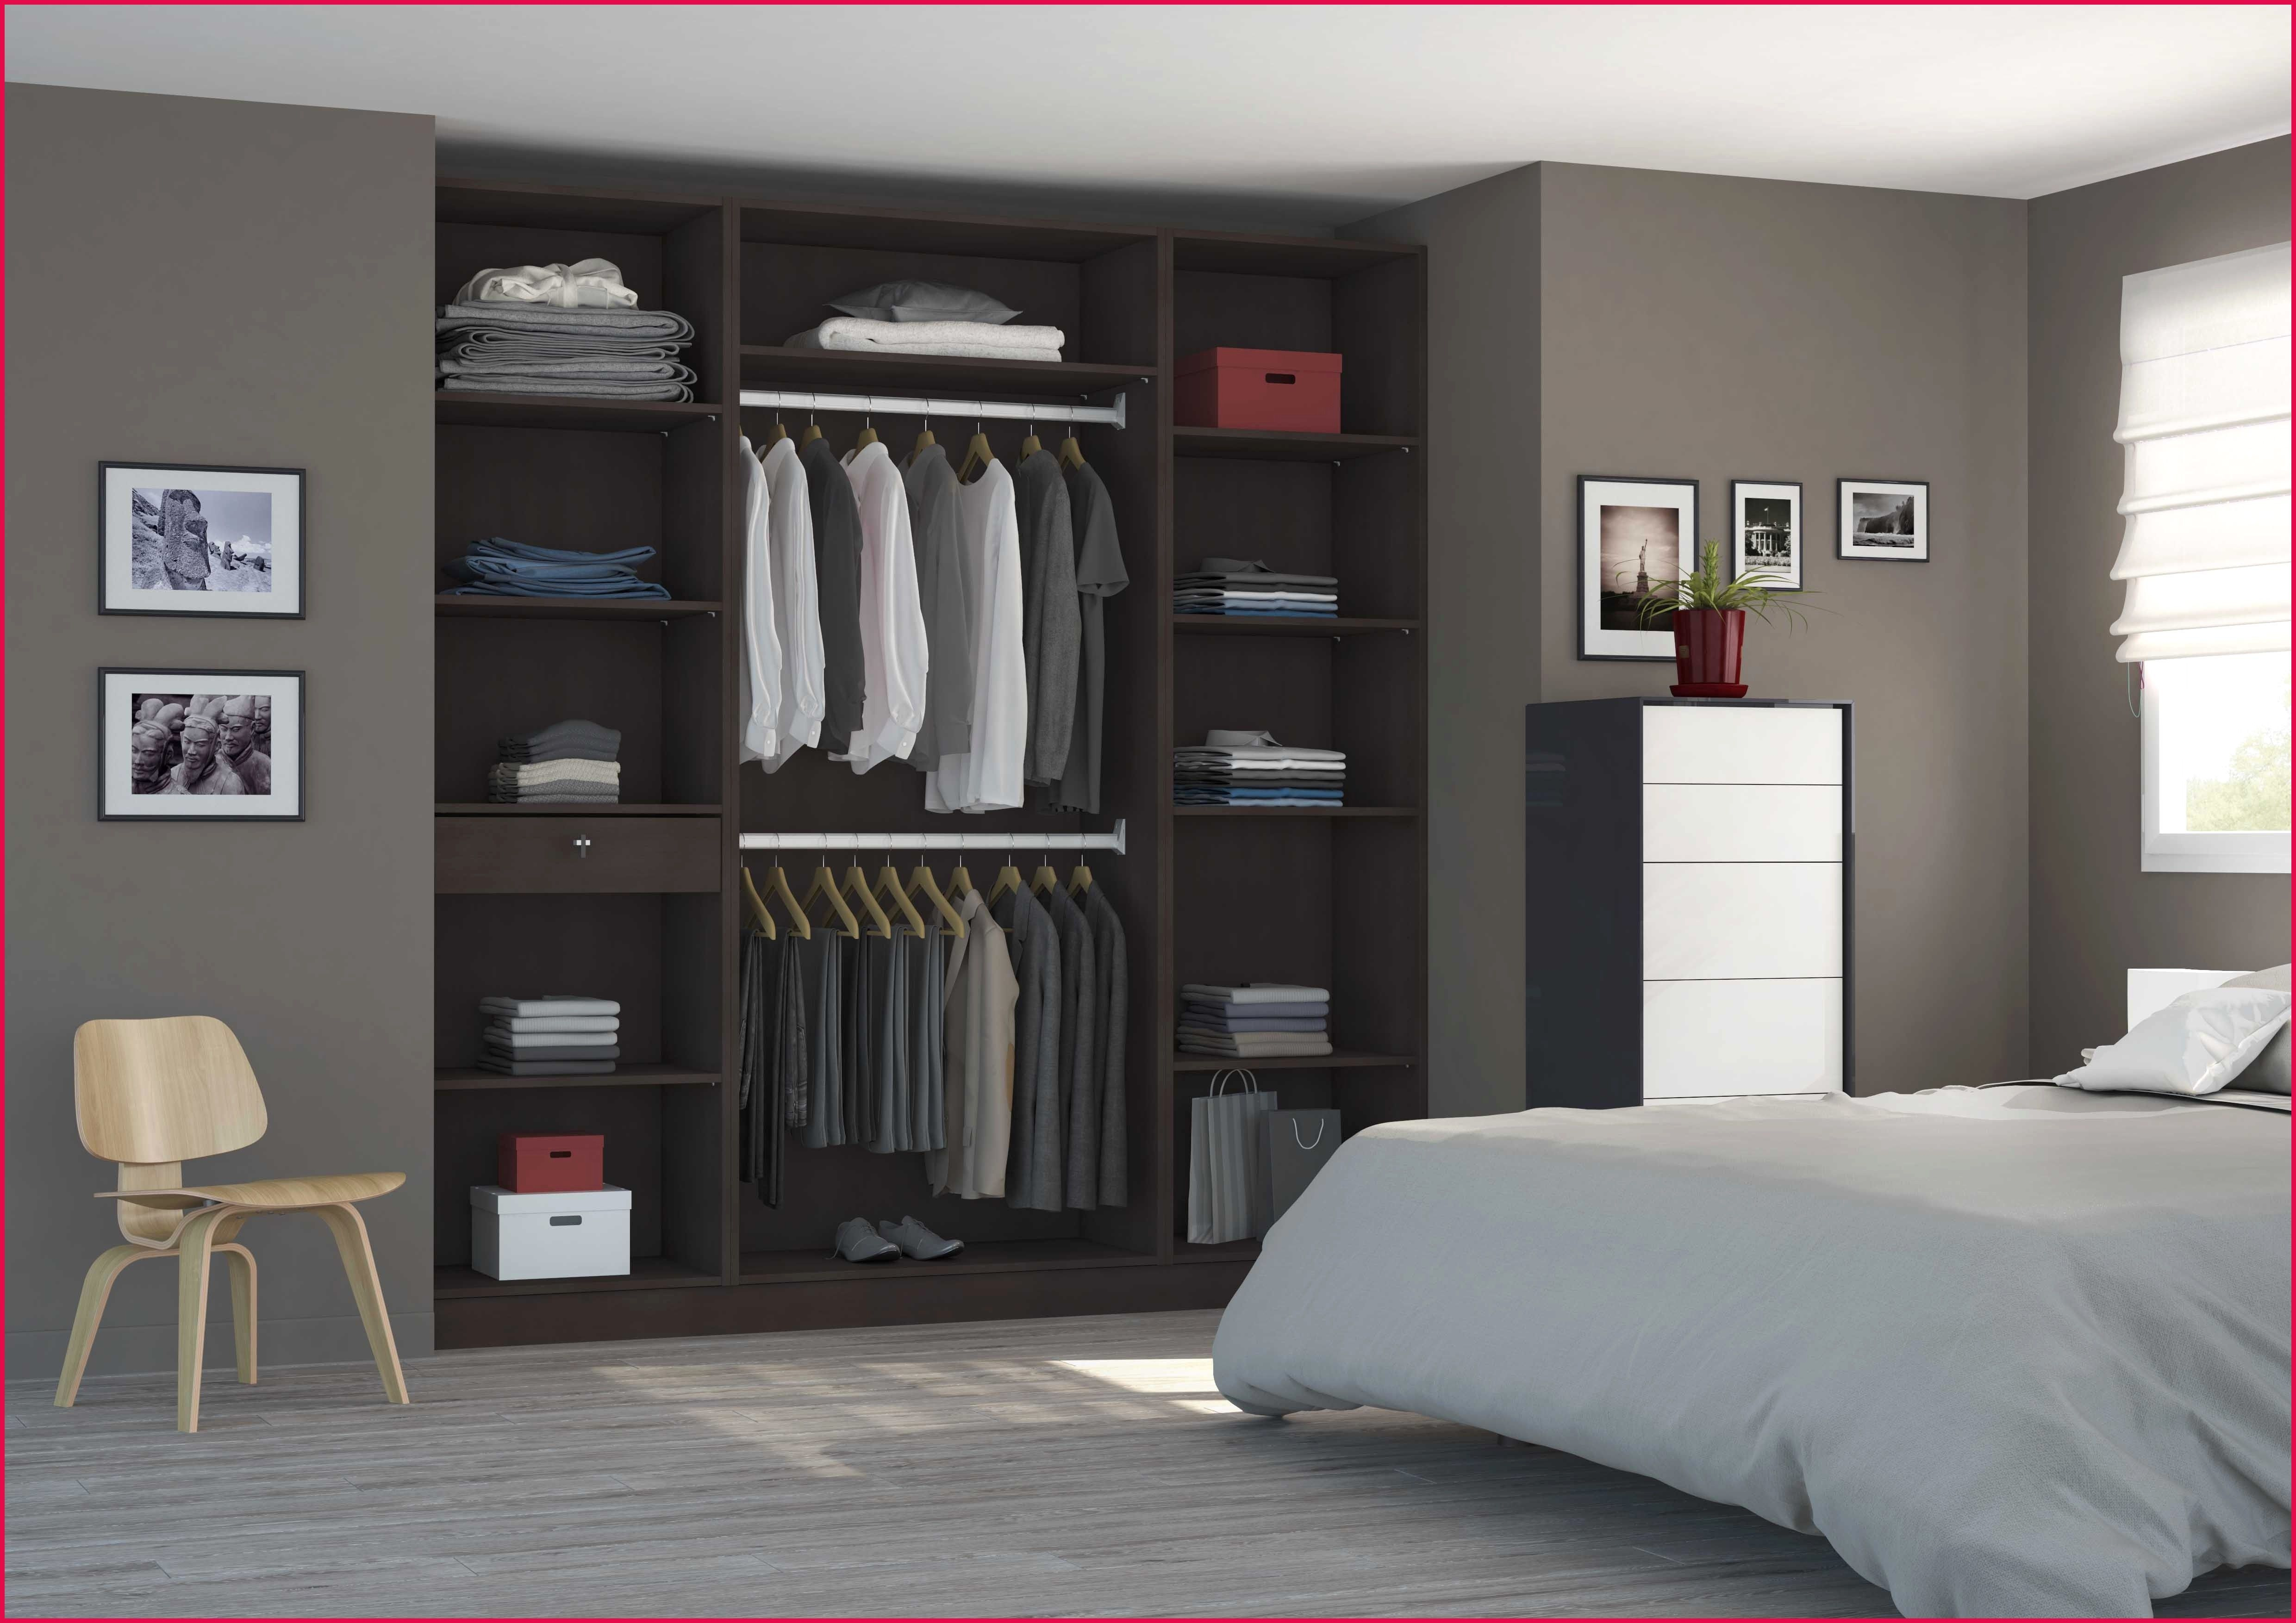 Beautiful Idée Placard Chambre in 2019 | Home, Home decor, Deco